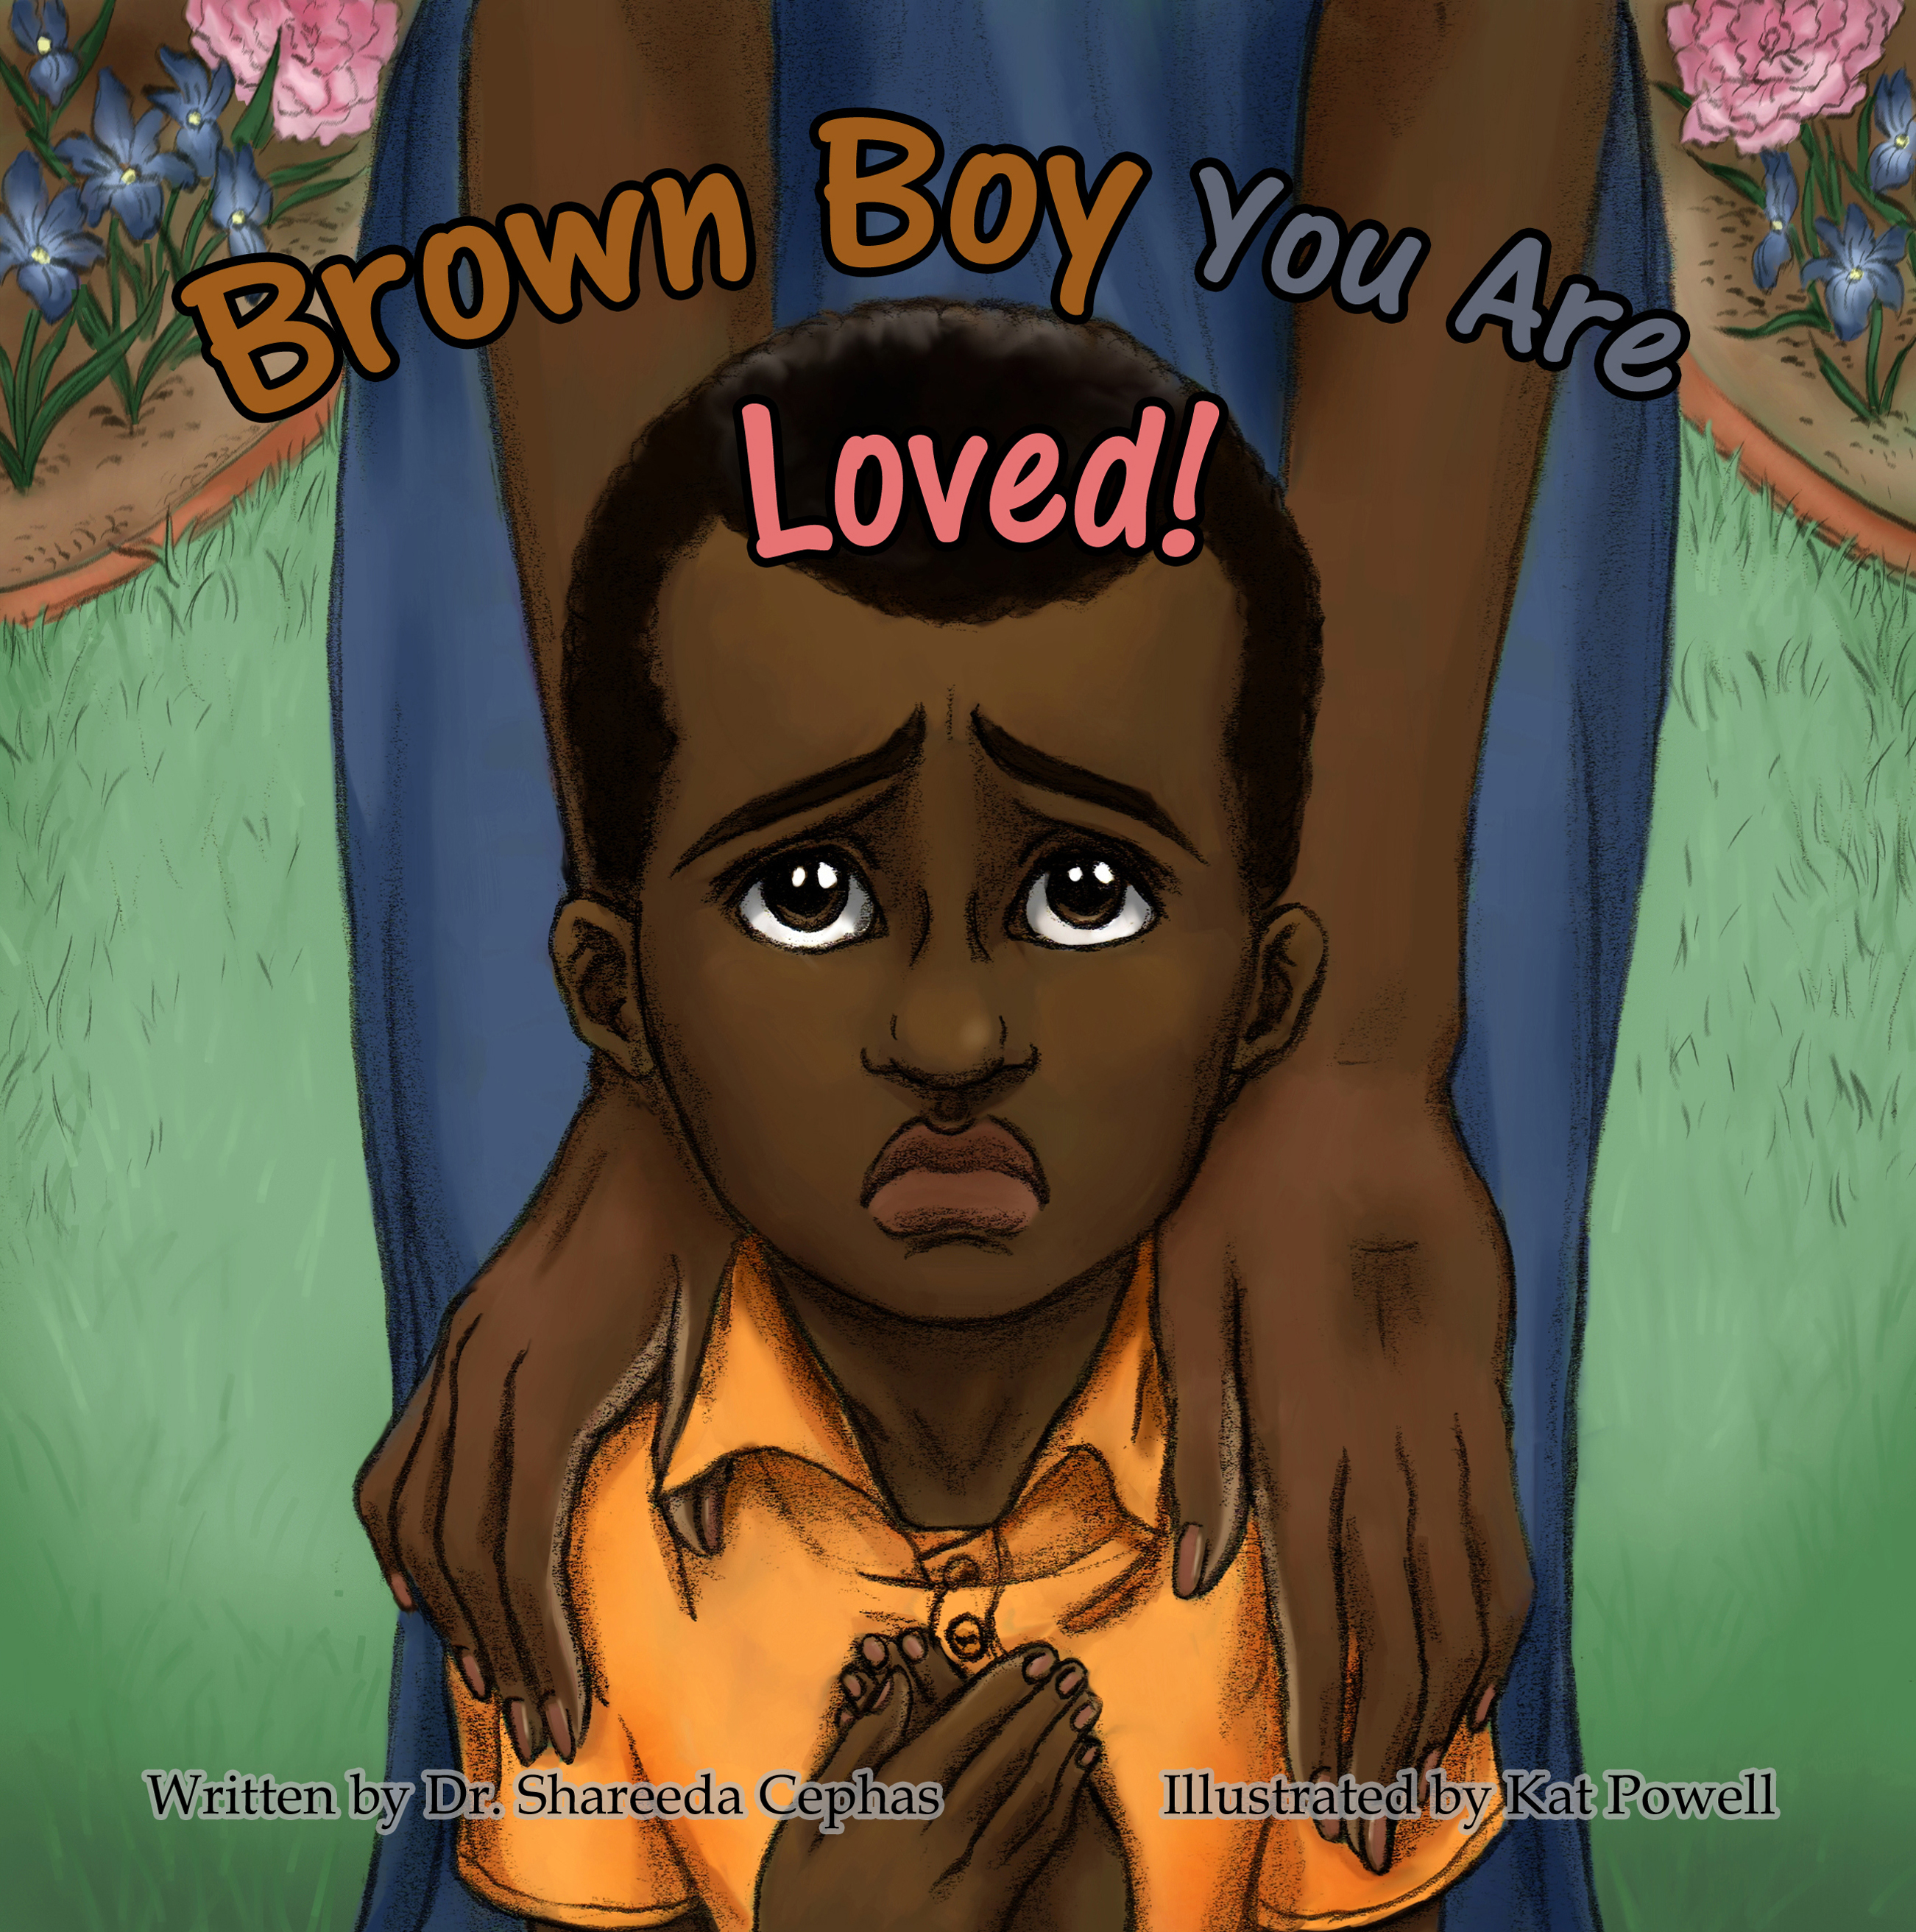 Brown Boy you are Loved